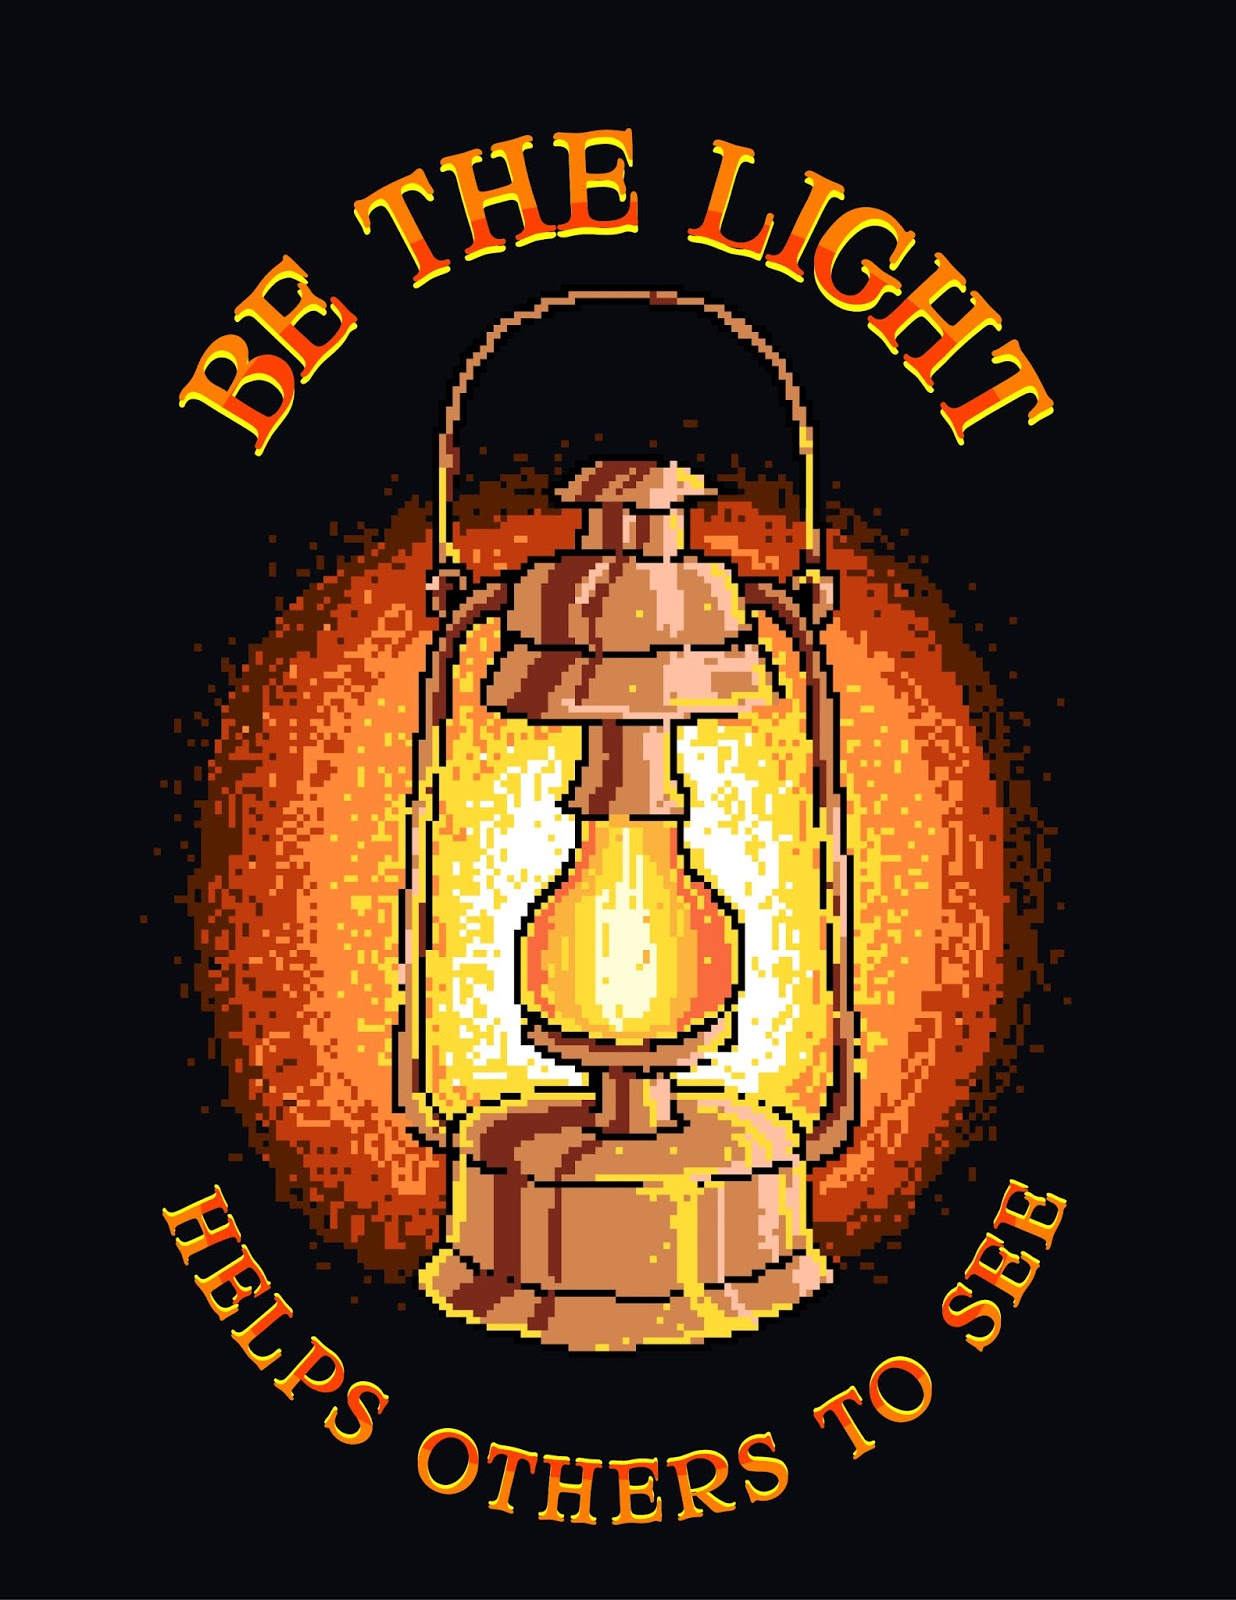 Pixel Art Vector Illustration Lantern With Motivational Positive Quote	 Free Download Vector CDR, AI, EPS and PNG Formats